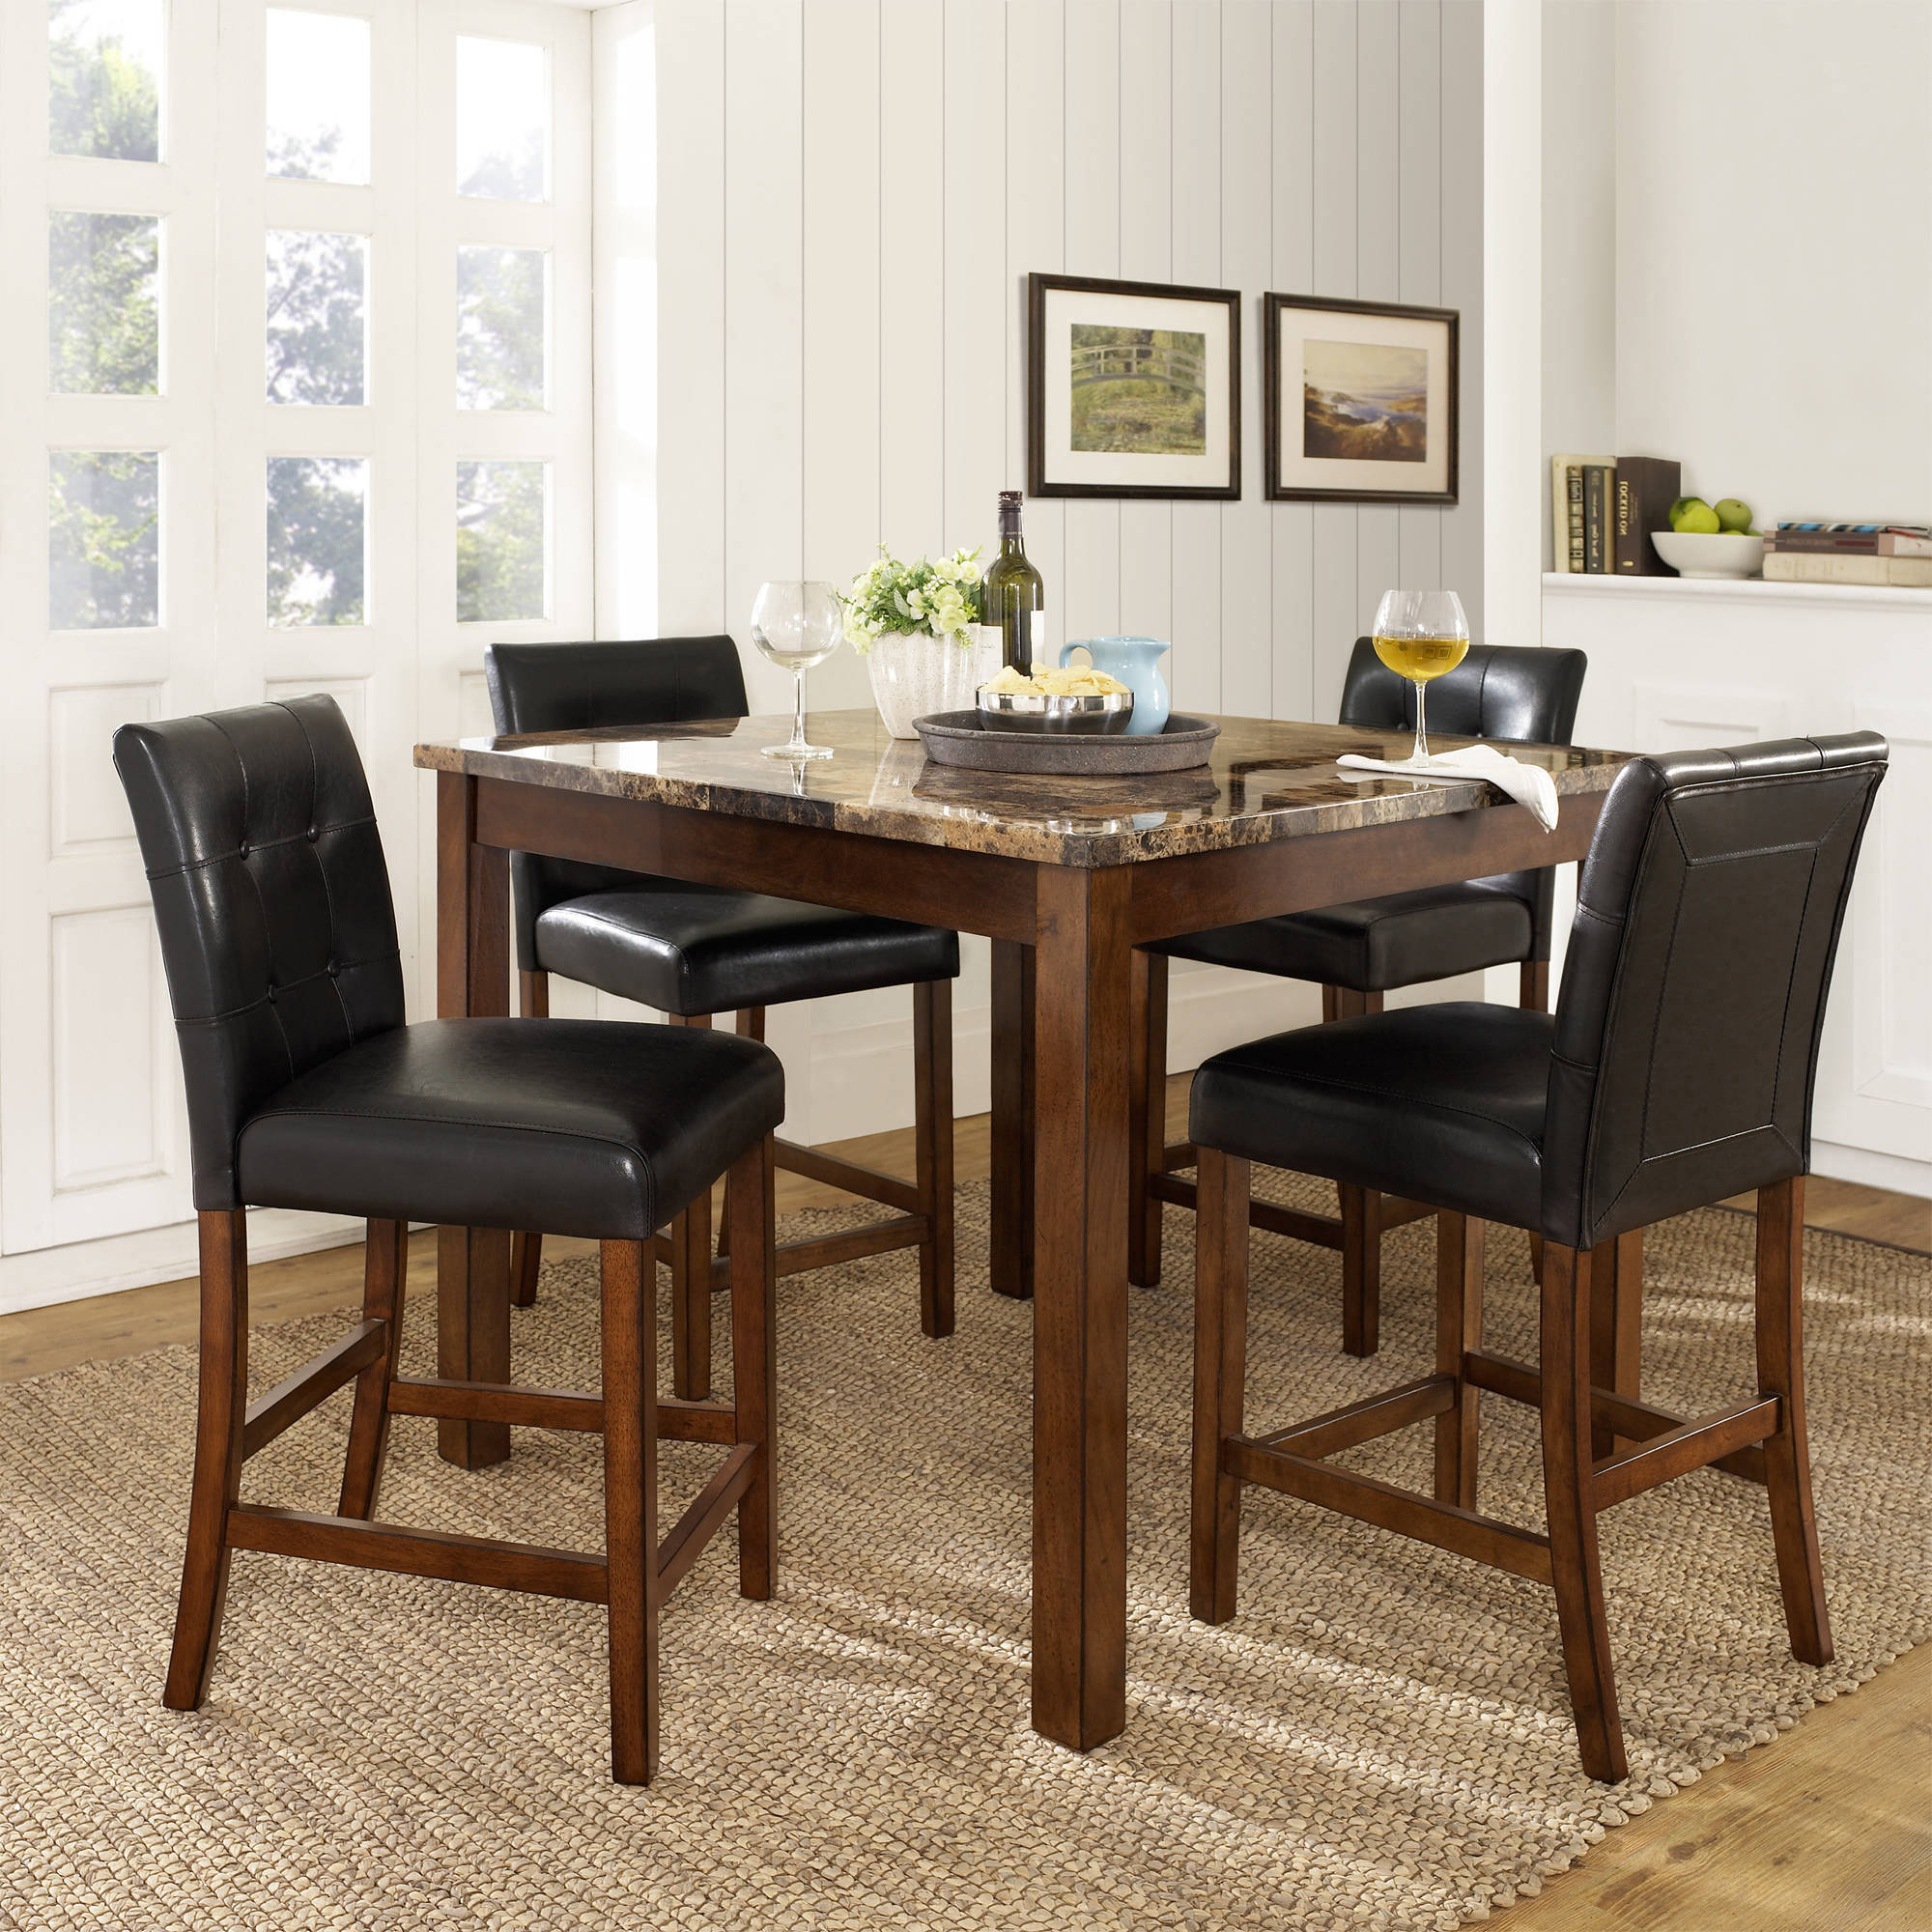 Trendy 5 Piece Dining Sets For Dorel Living Andover 5 Piece Counter Height Dining Set, Multiple (View 22 of 25)